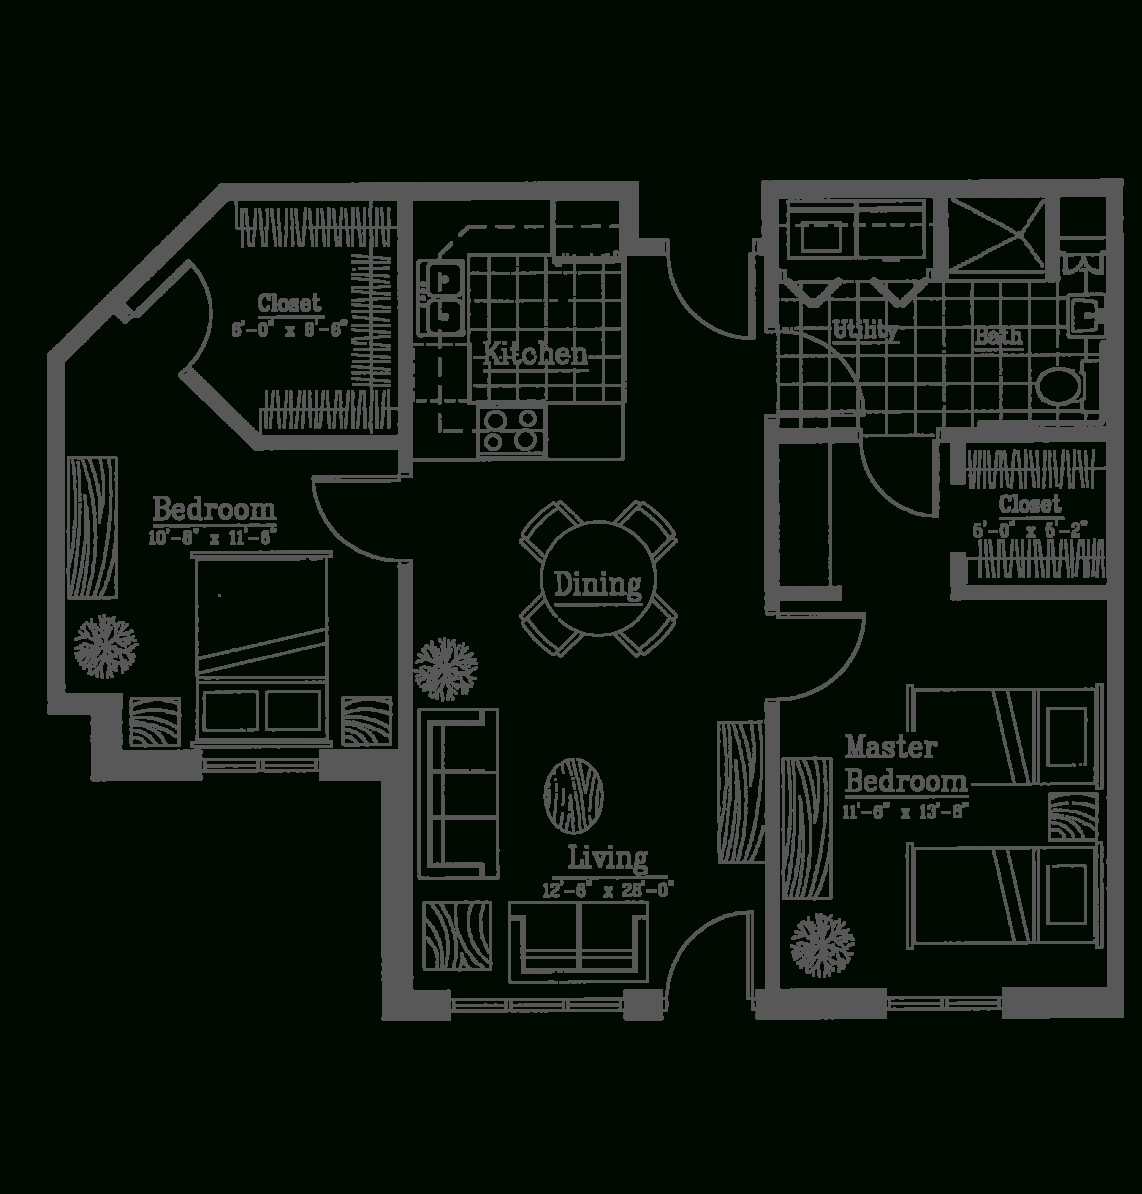 Apartment: One Bedroom Apartment Layouts for Garden Apartment Floor Plans